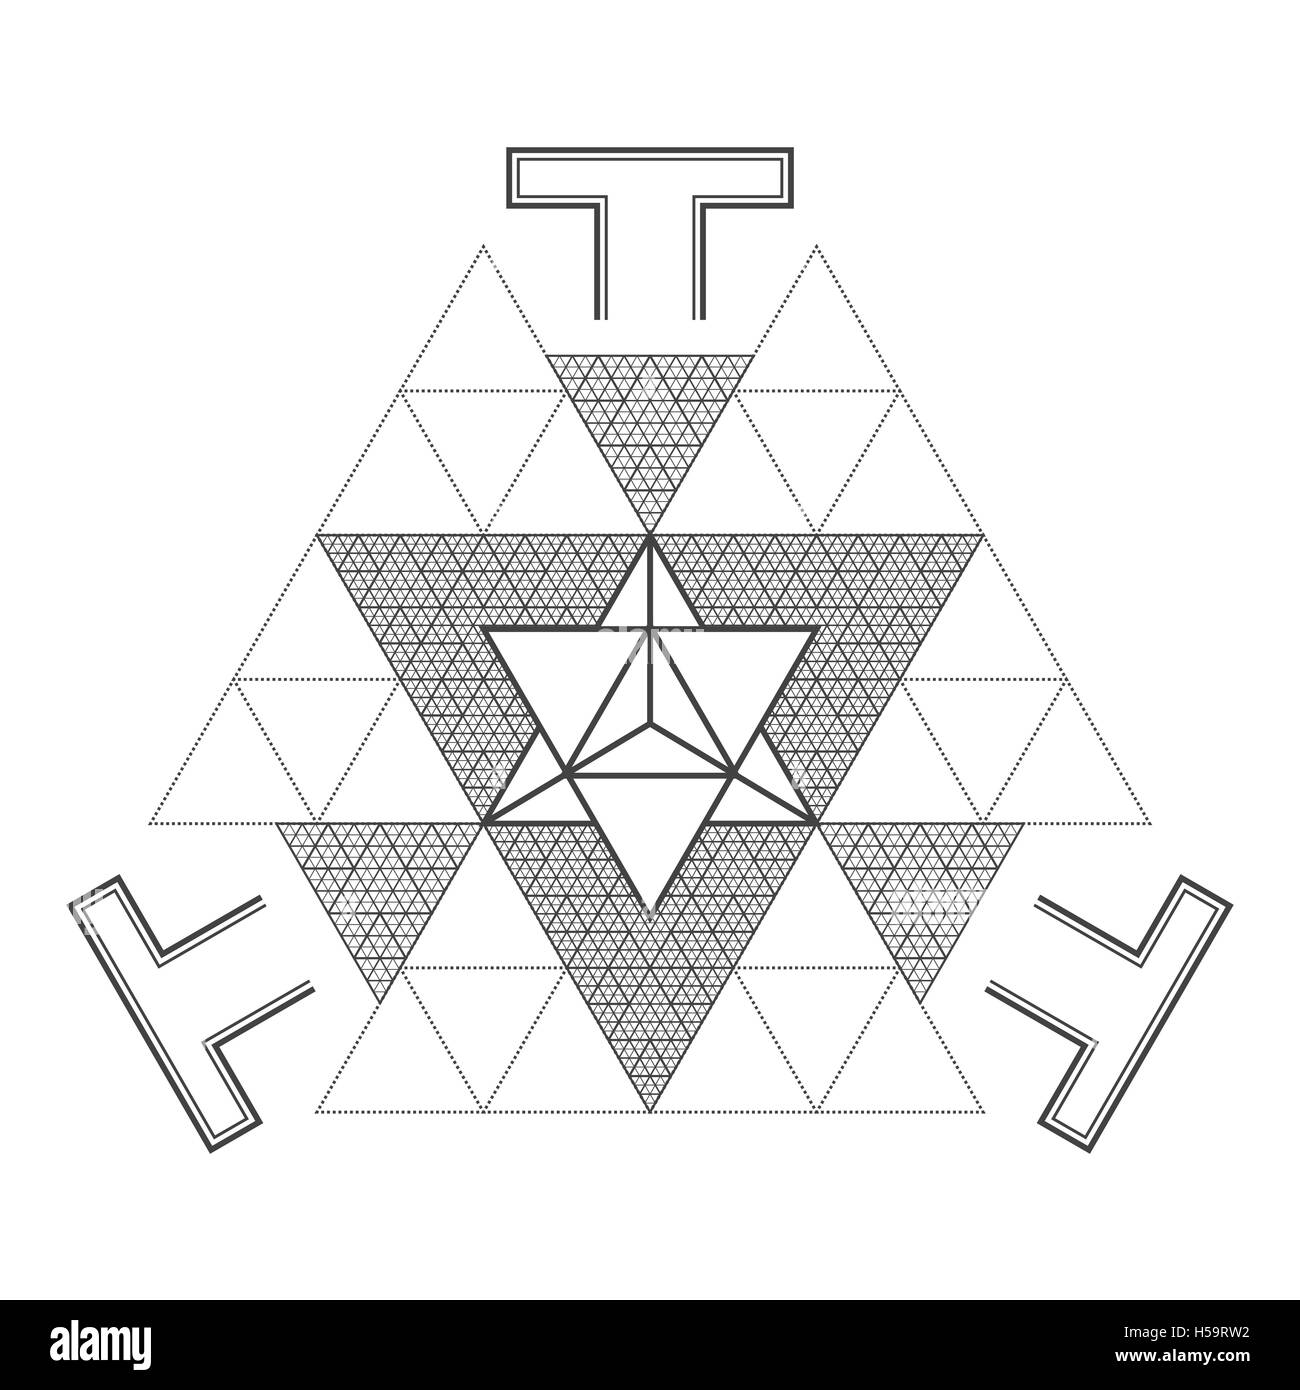 vector contour monochrome design mandala sacred geometry illustration merkaba triangle bhupura dot art isolated - Stock Image